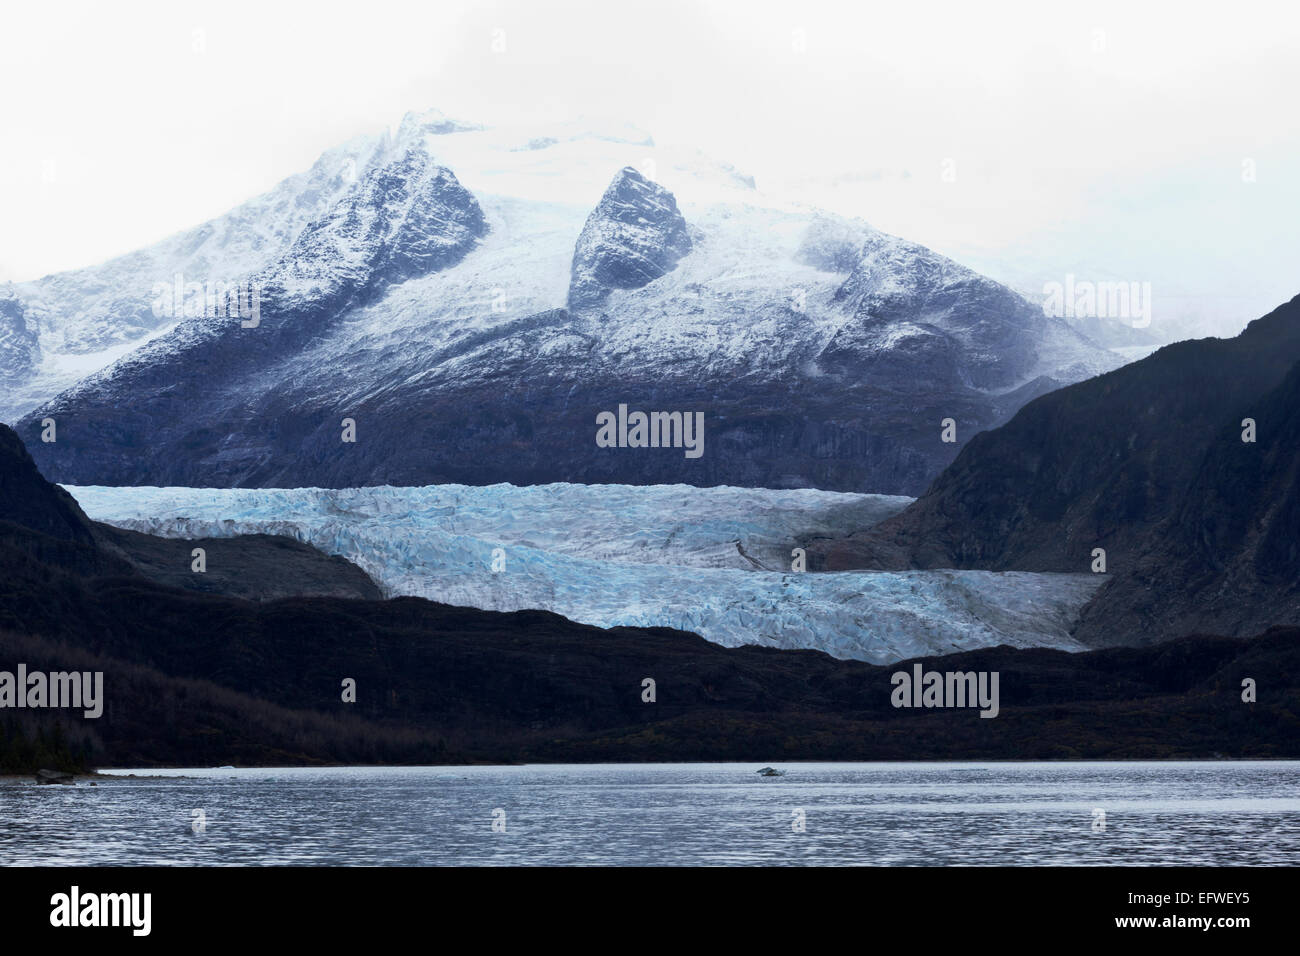 View across Mendenhall Hall Lake to glacier and icefields in Juneau, Alaska. Site is major tourist attraction. Stock Photo